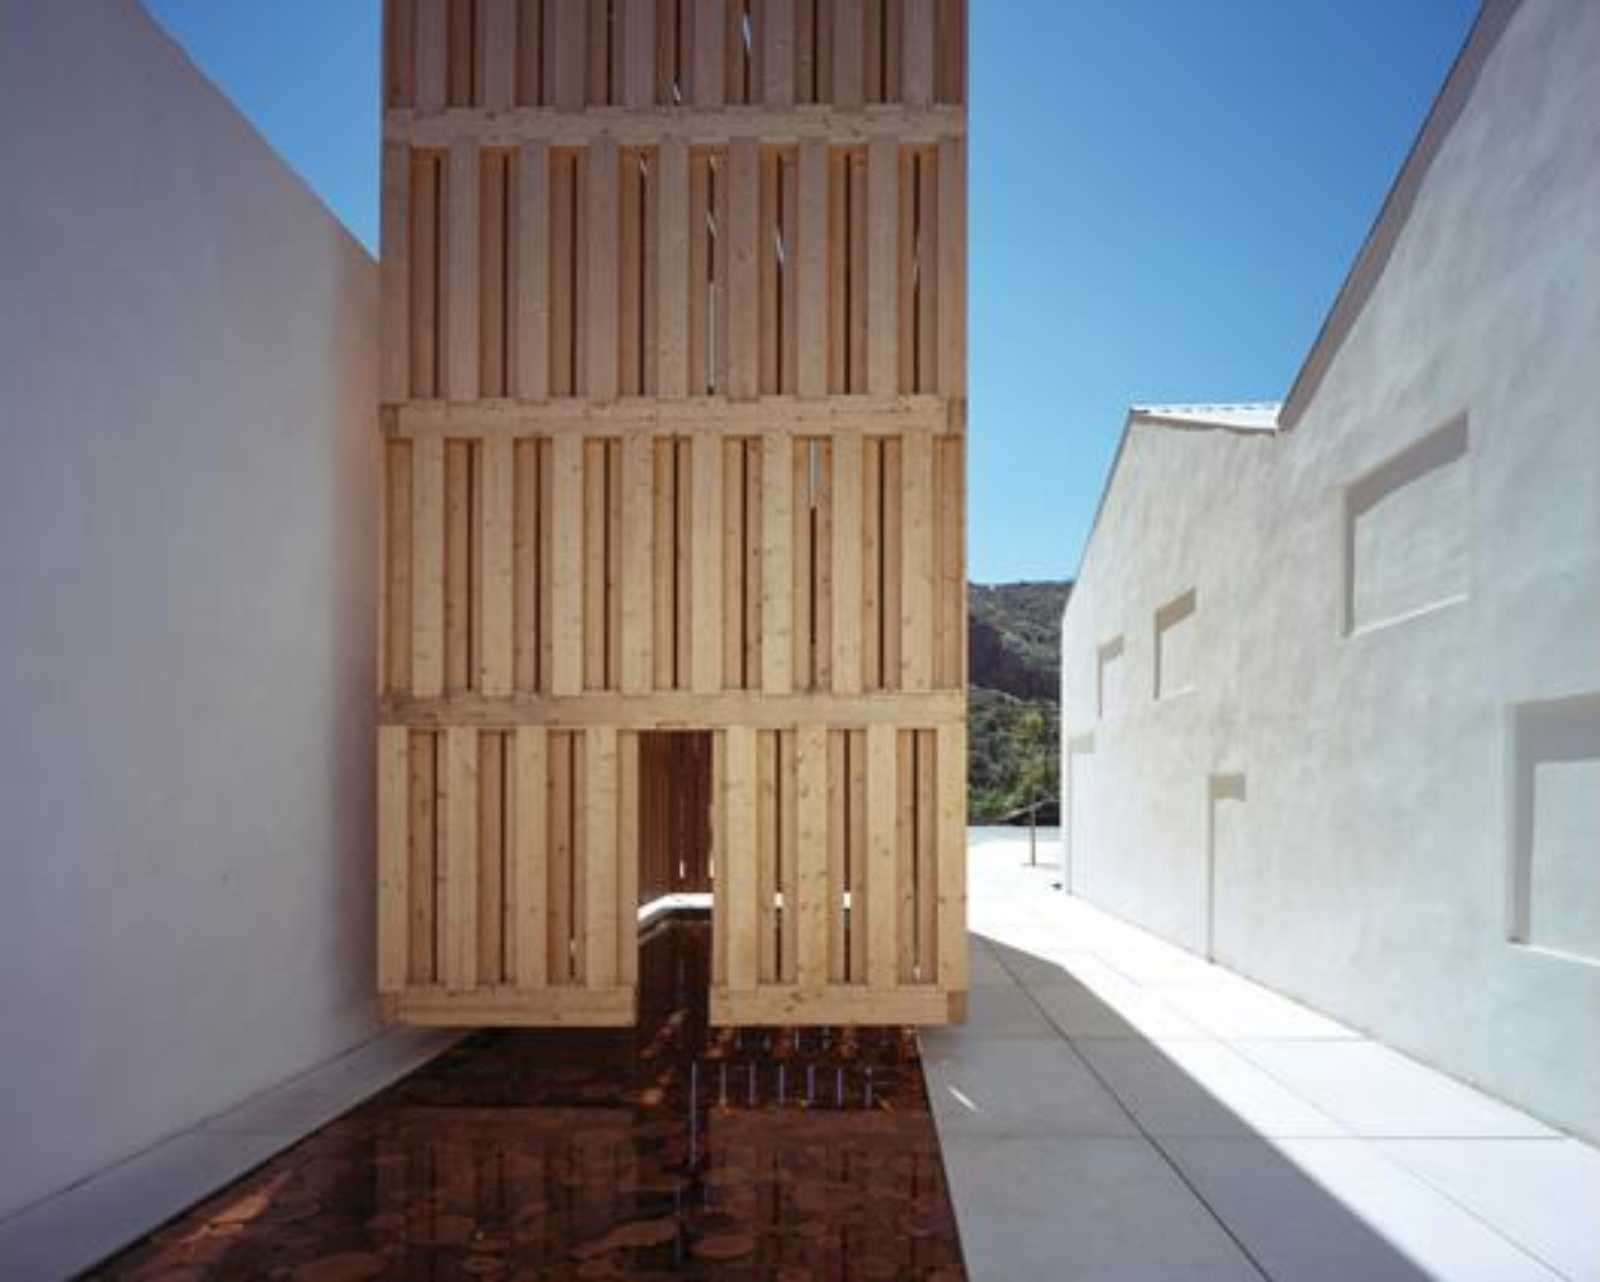 Old And New Architecture Design Relationship old and new architecture design relationship domingo santos in